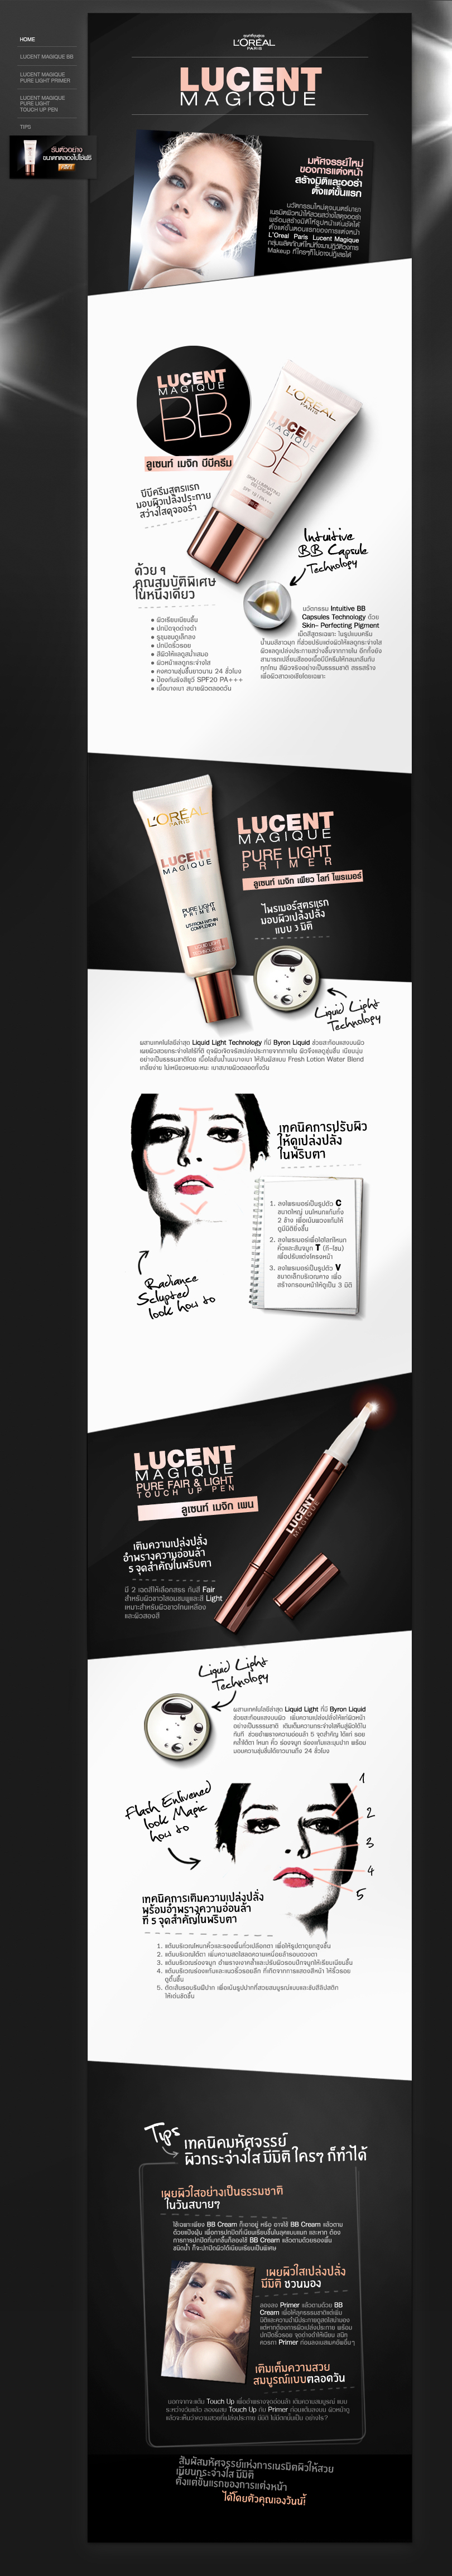 L'Oreal Paris lucent : Facebook app / 01/10/12